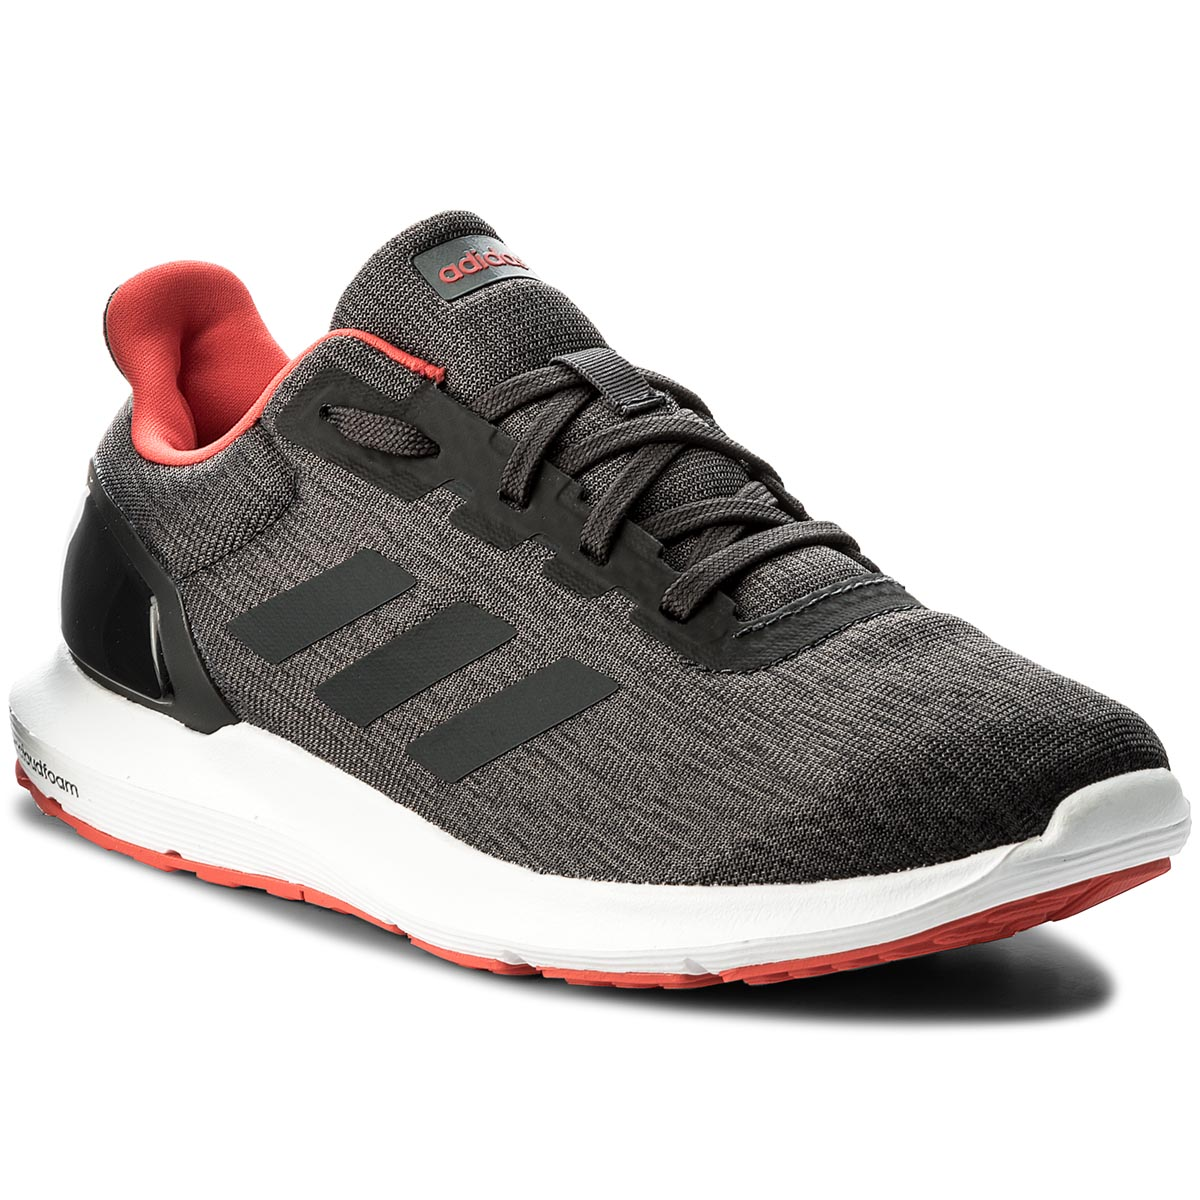 Buty adidas – Cosmic 2 W CP8712 Carbon/Carbon/Reacor